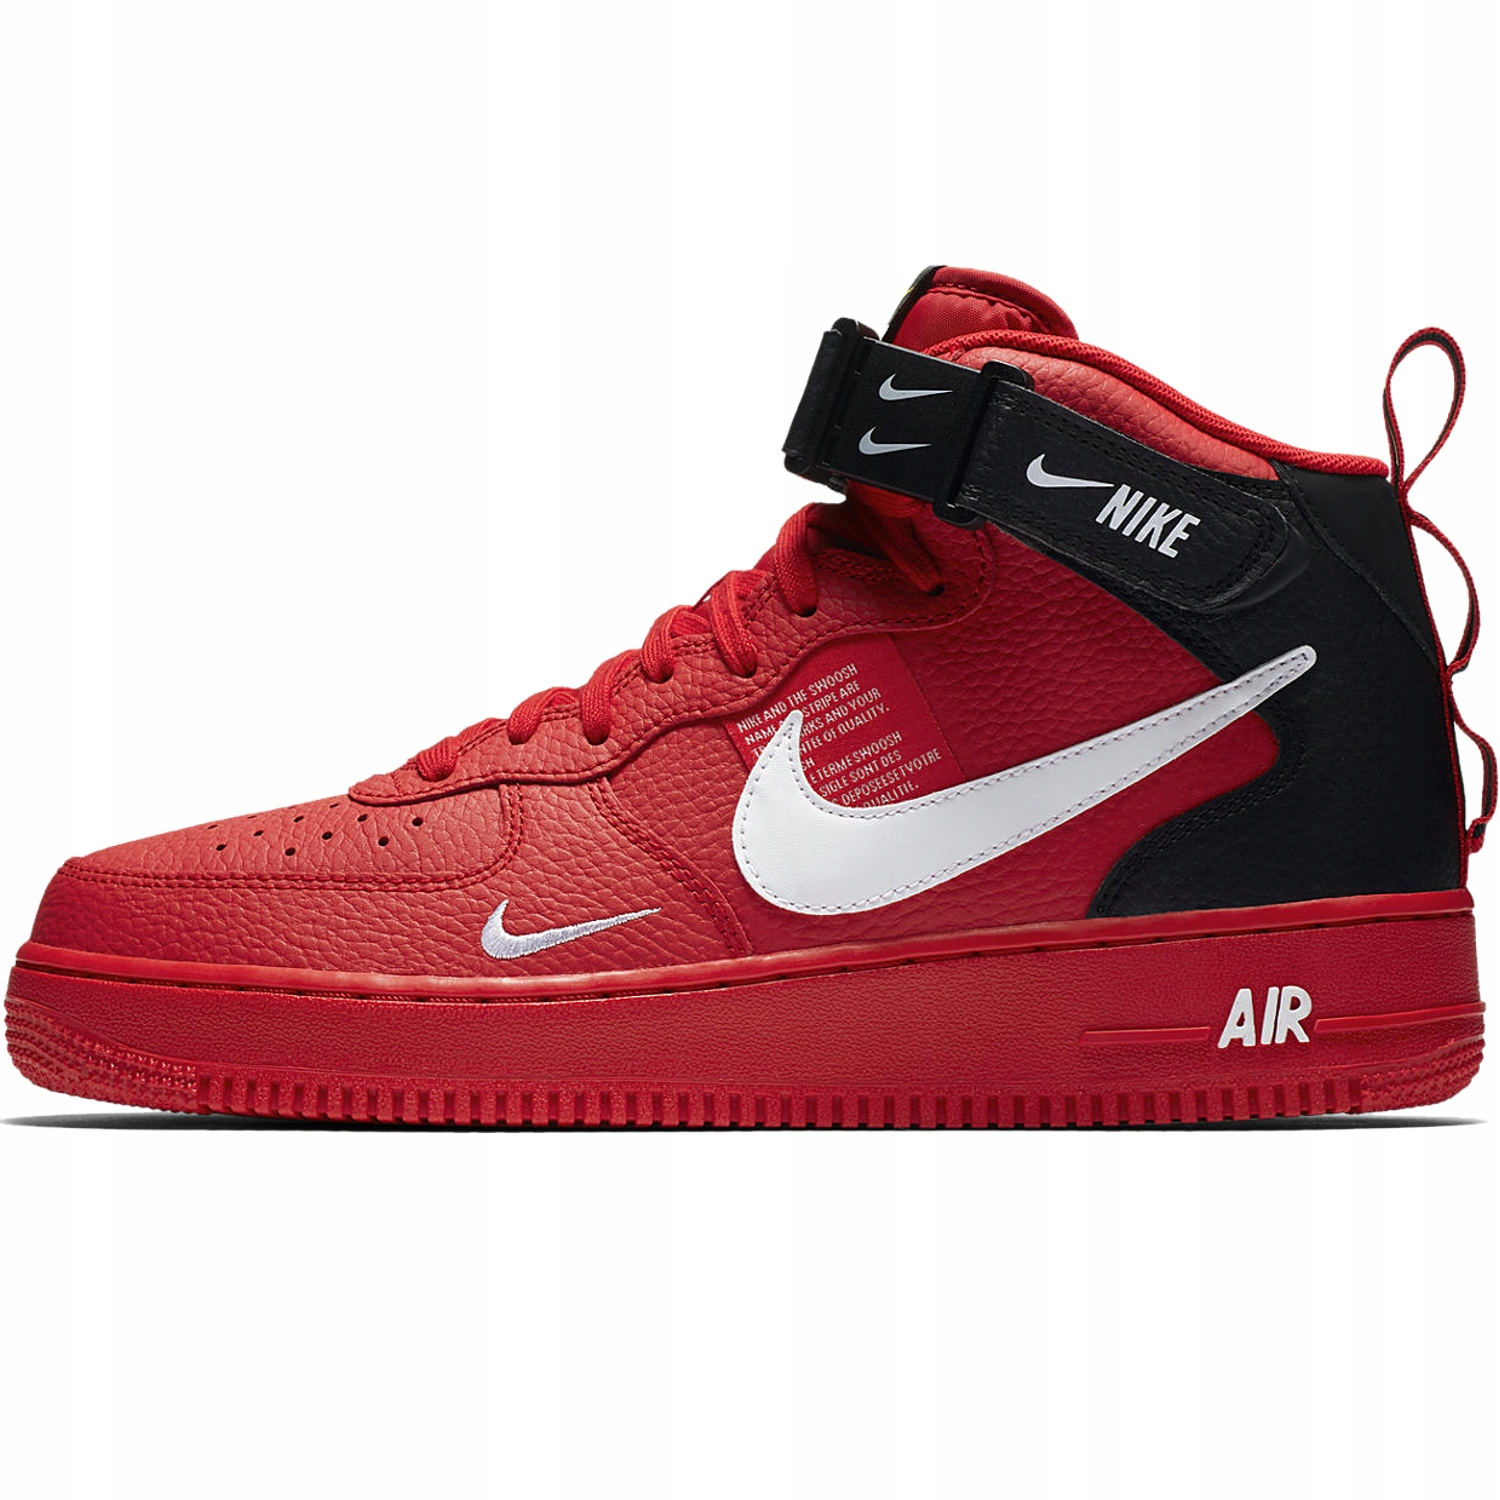 competitive price 623f8 c020b Nike Air Force 1 Mid '07 LV8 Utility 804609-605 - 7701515435 ...